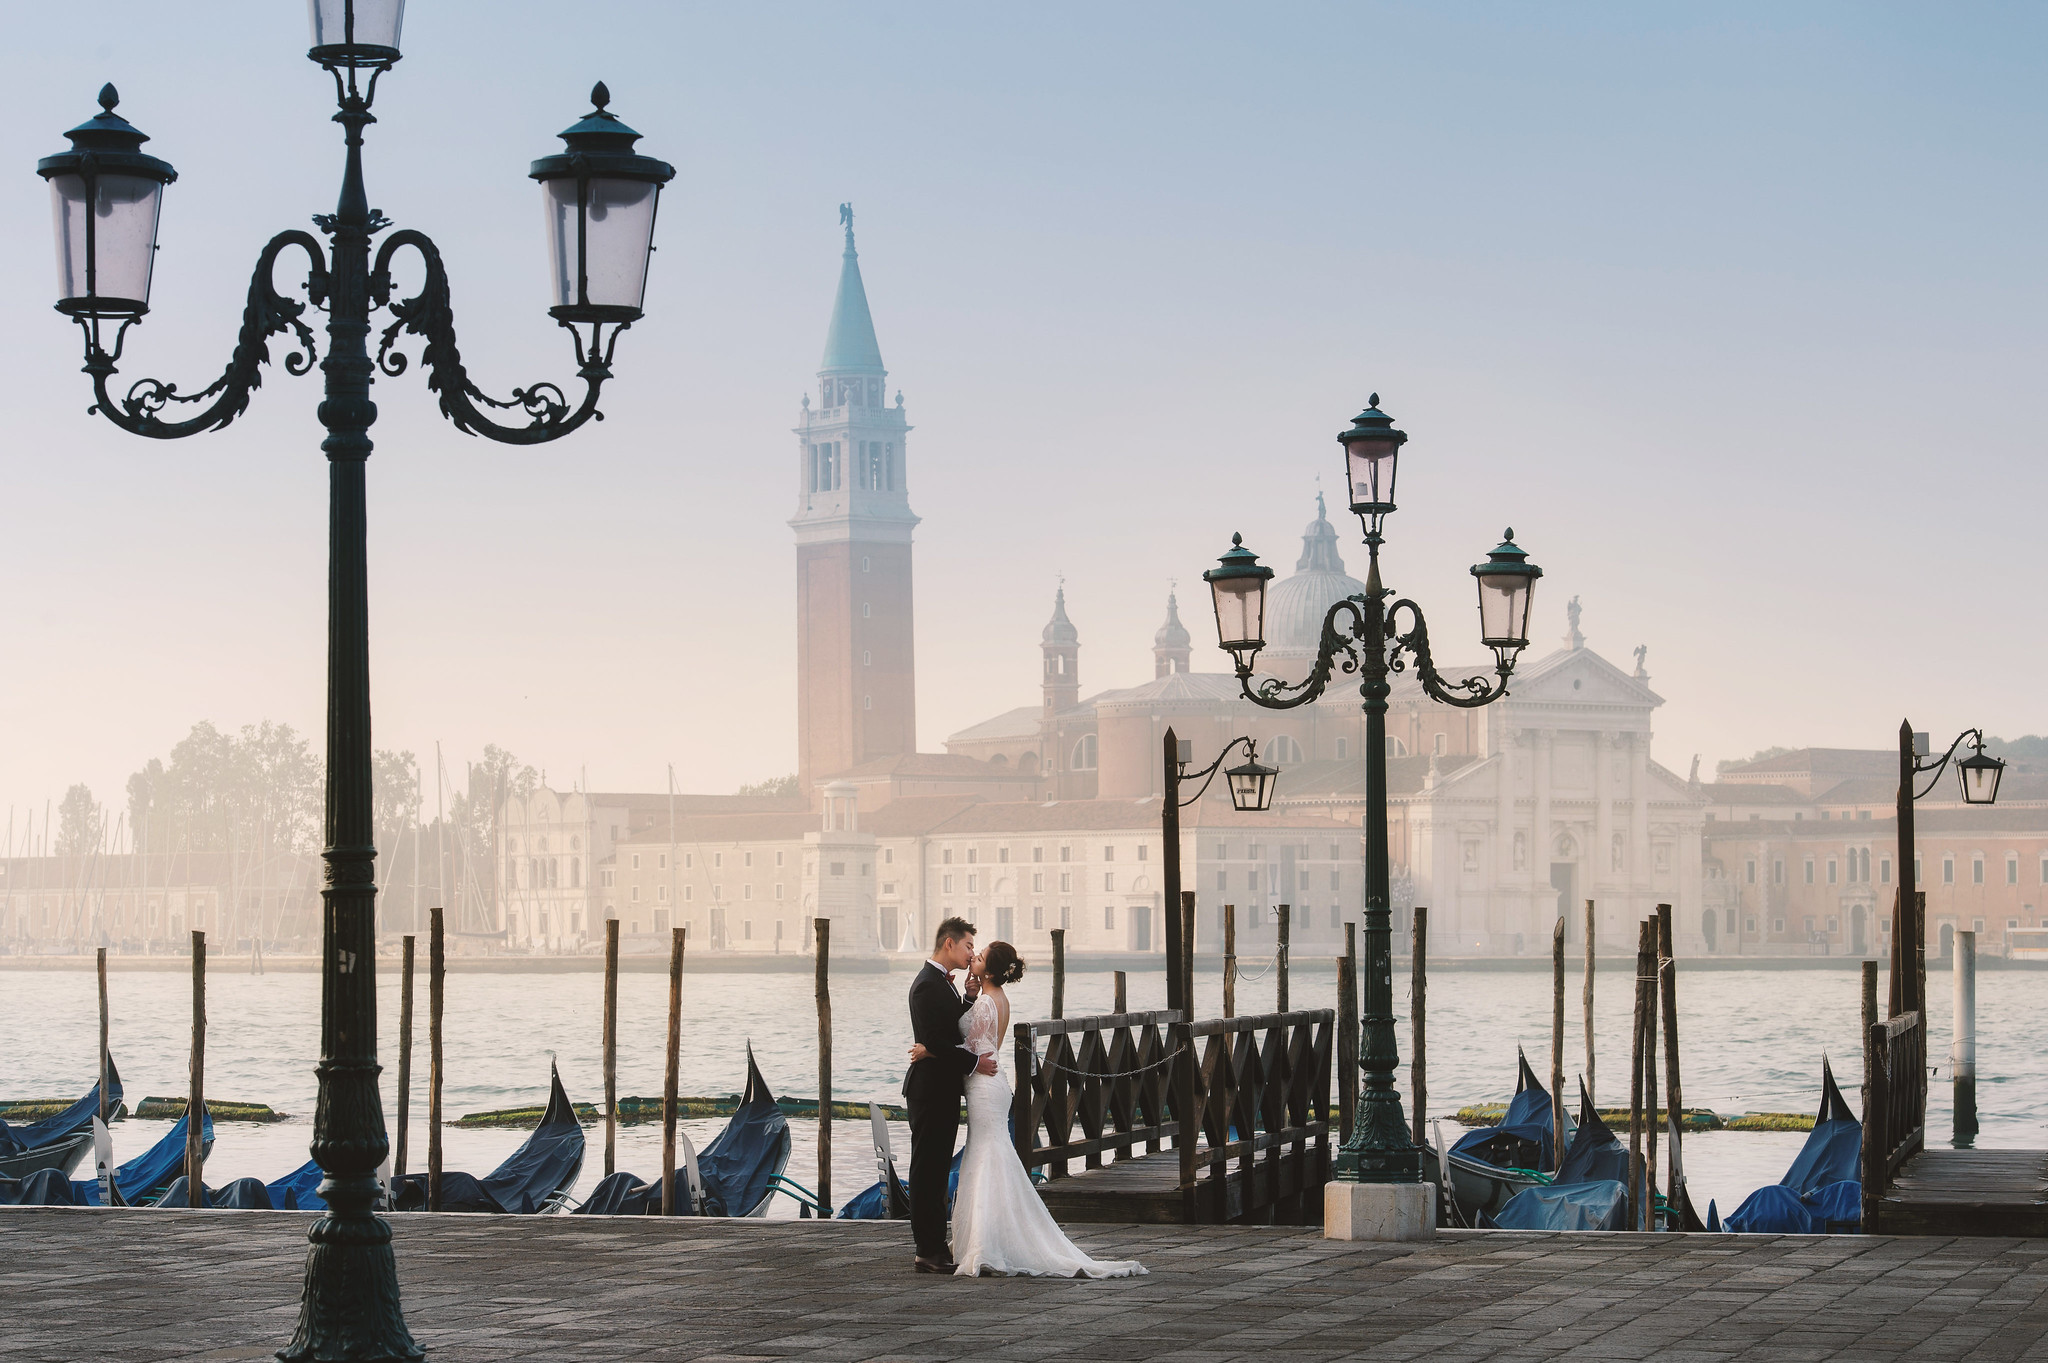 Donfer Photography, EASTERN WEDDING, 東法, Venice, 海外婚紗 ,威尼斯婚紗, 藝術婚紗,